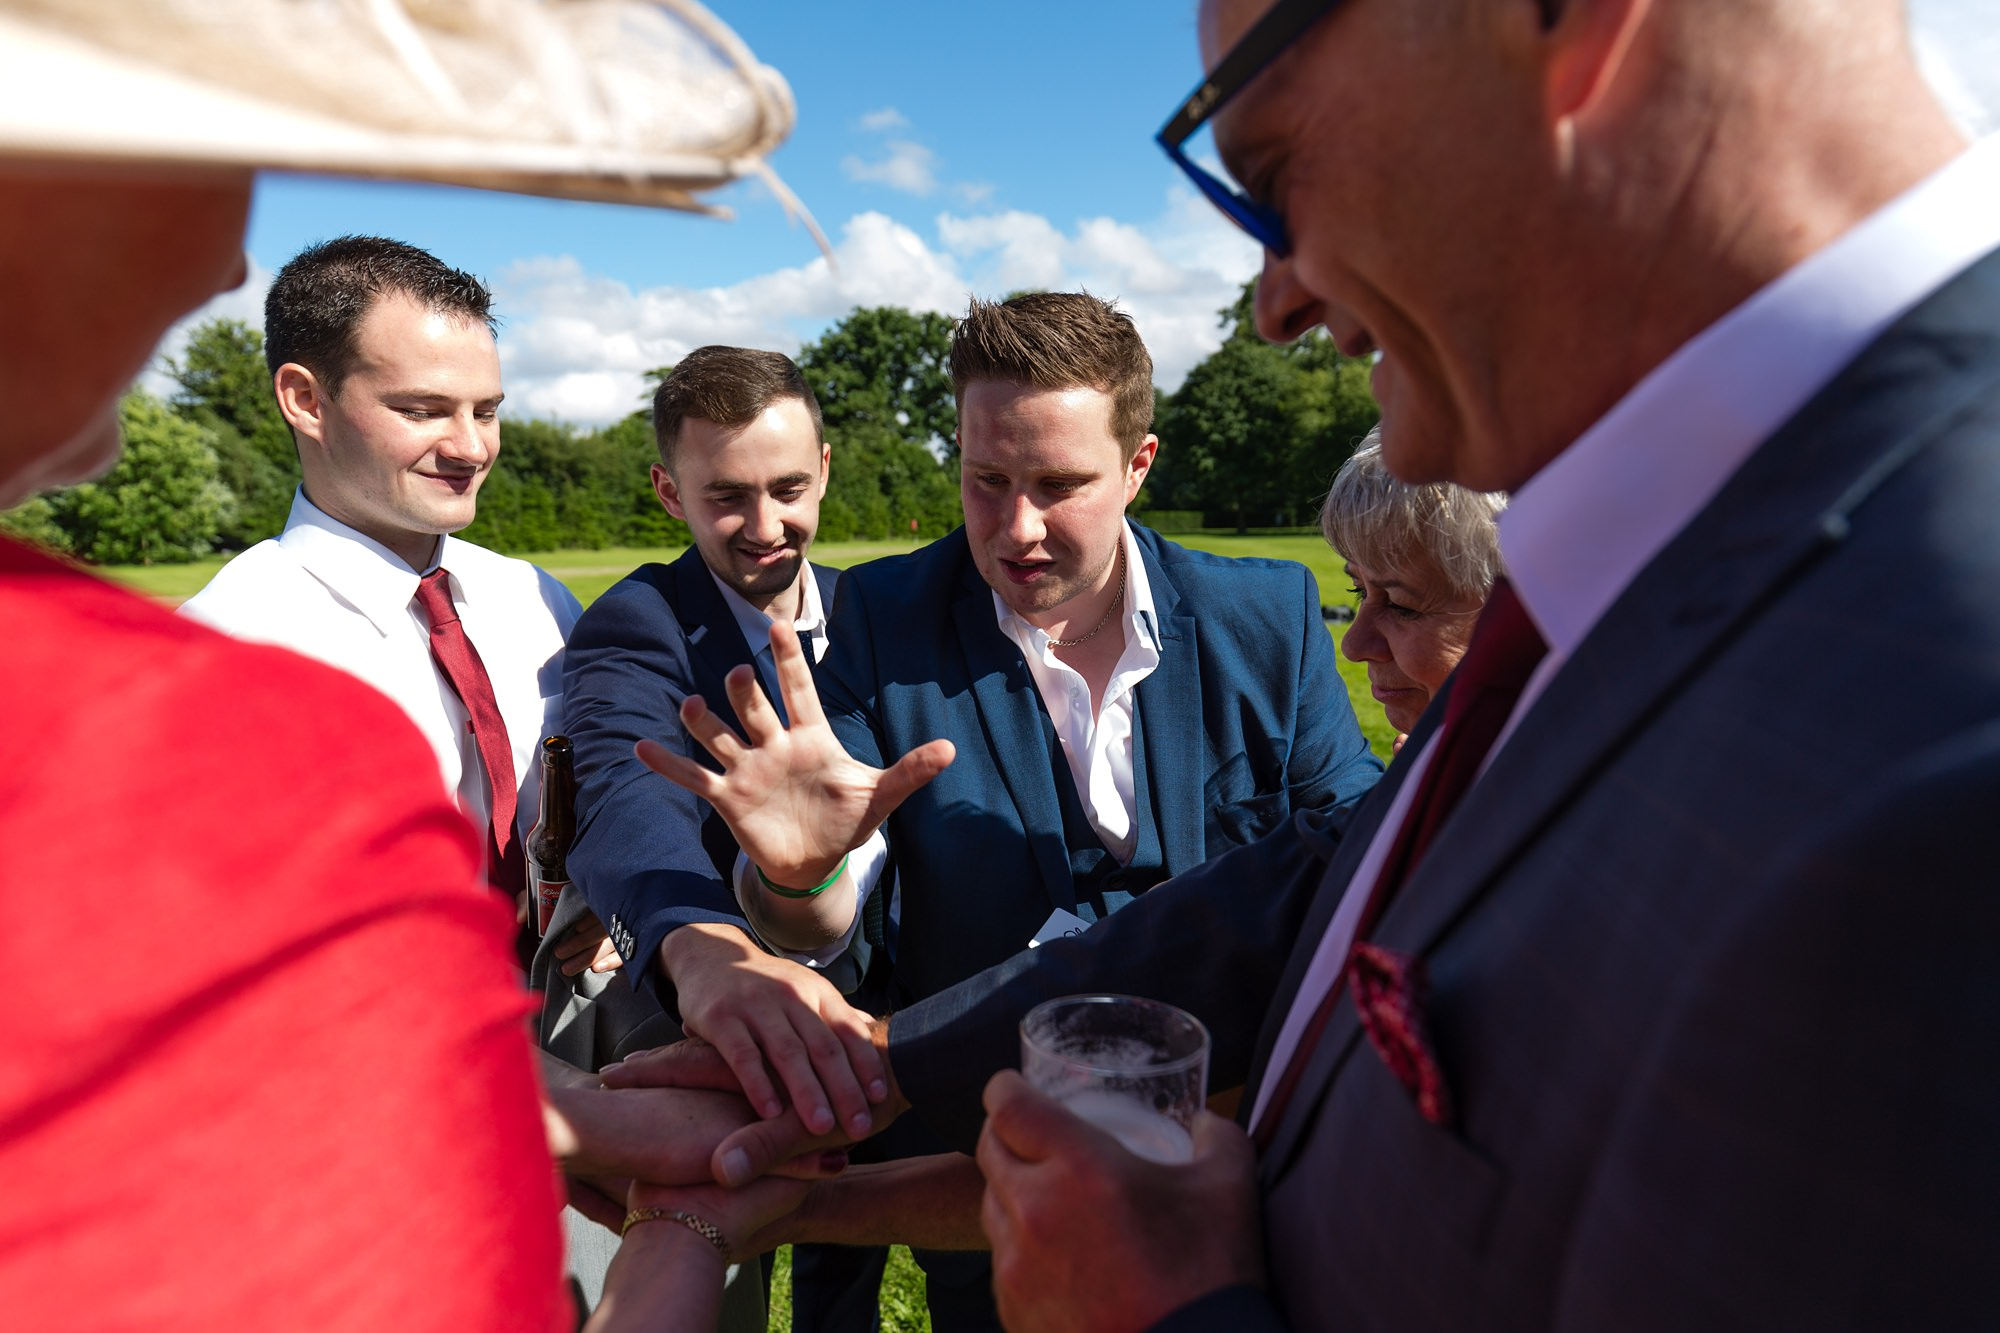 Bell Hall Wedding Photography magician performing a trick for guests